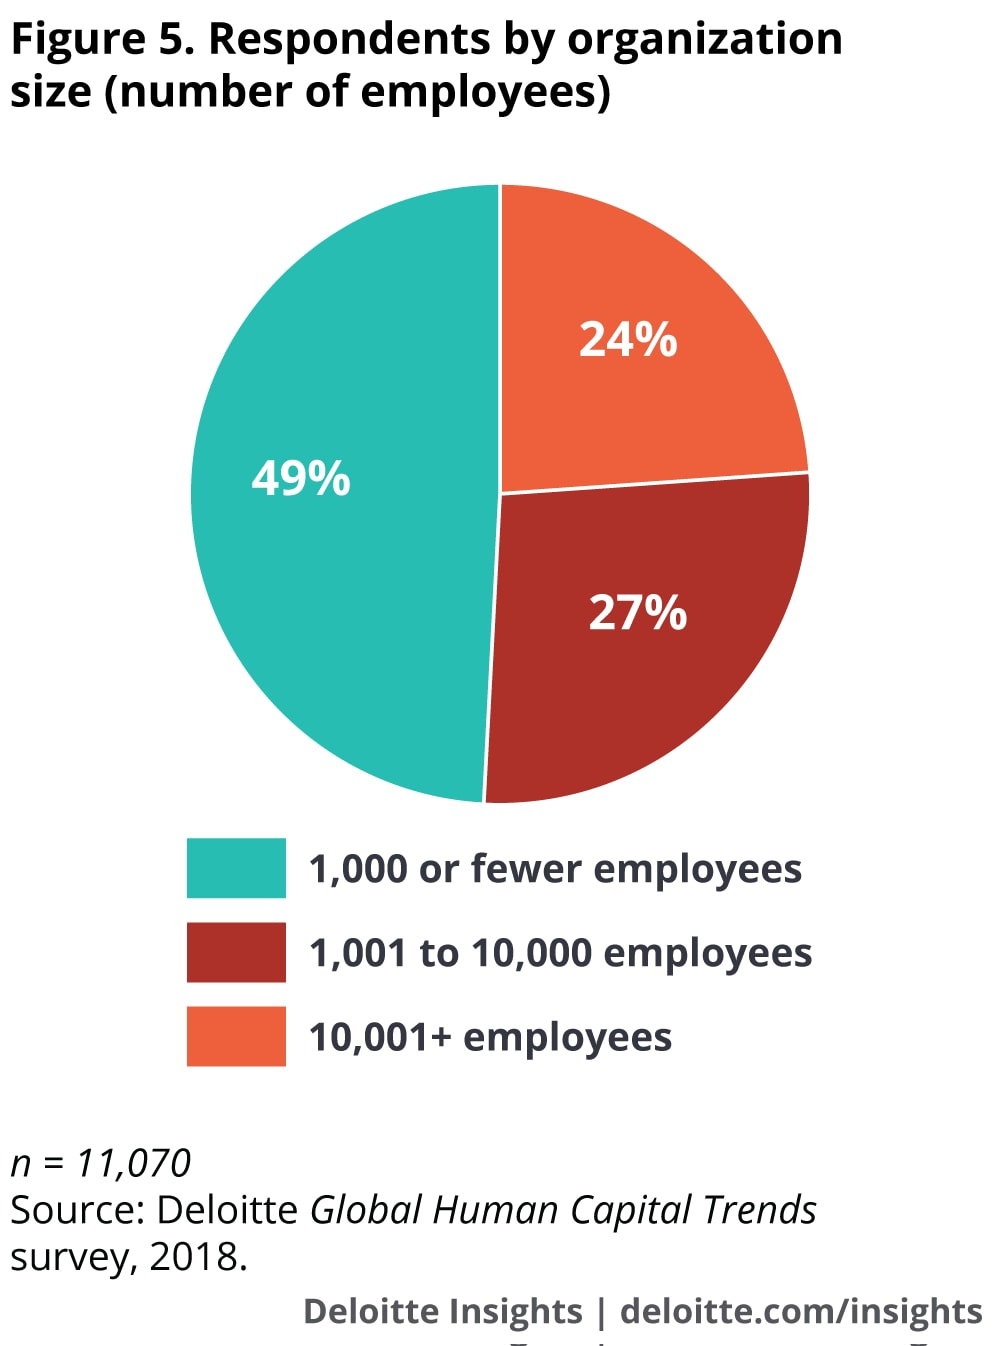 Respondents by organization size (number of employees)